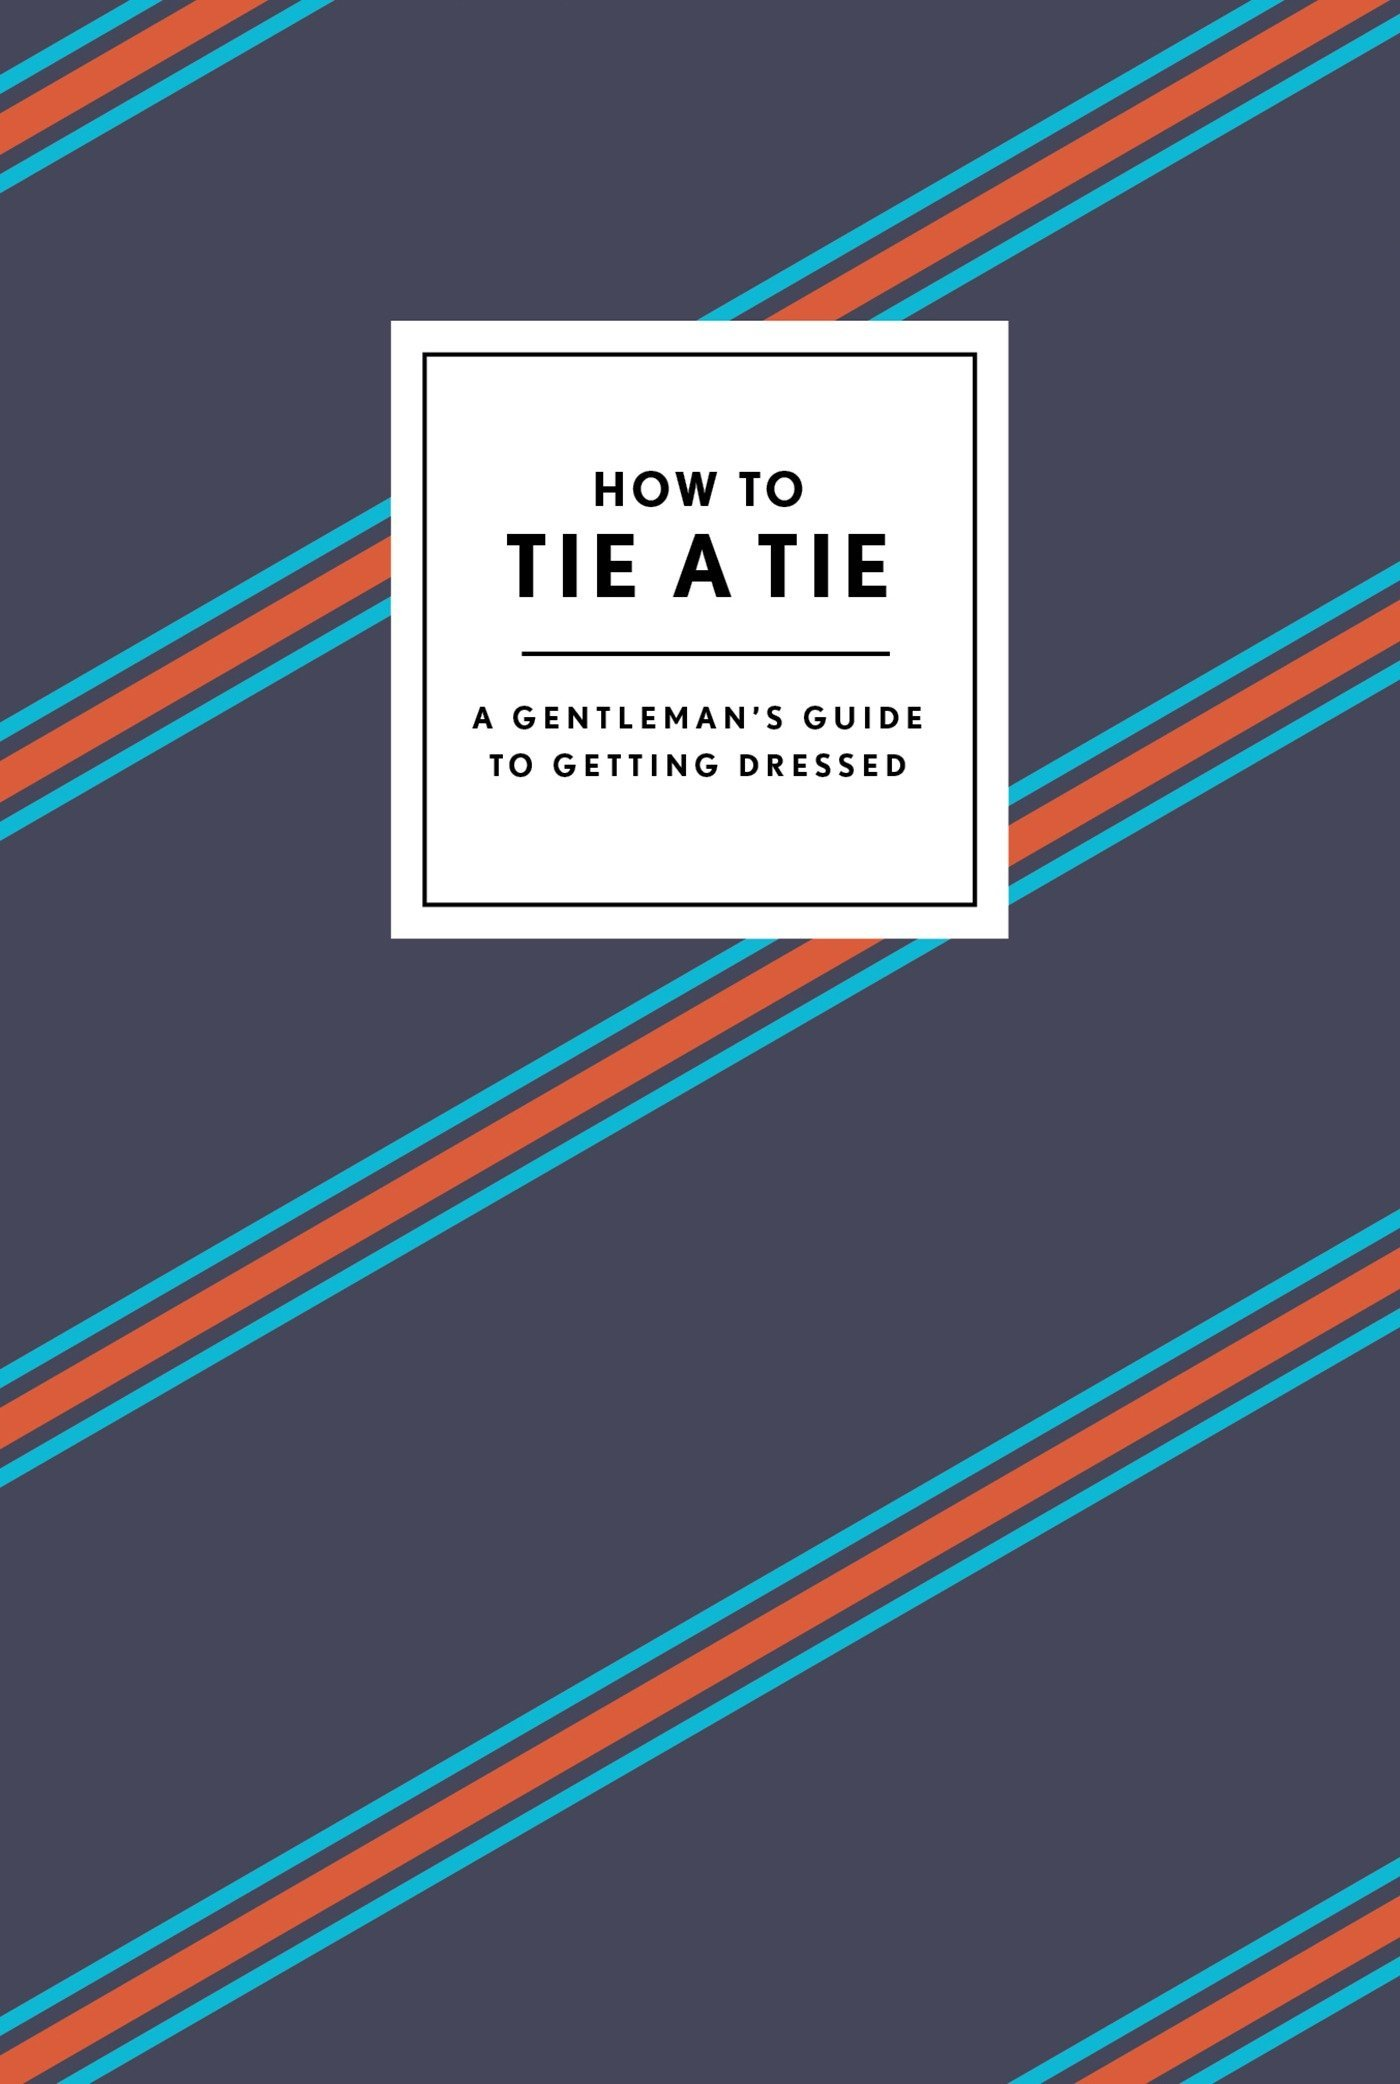 How to Tie a Tie: A Gentleman's Guide to Getting Dressed (How To Series) pdf